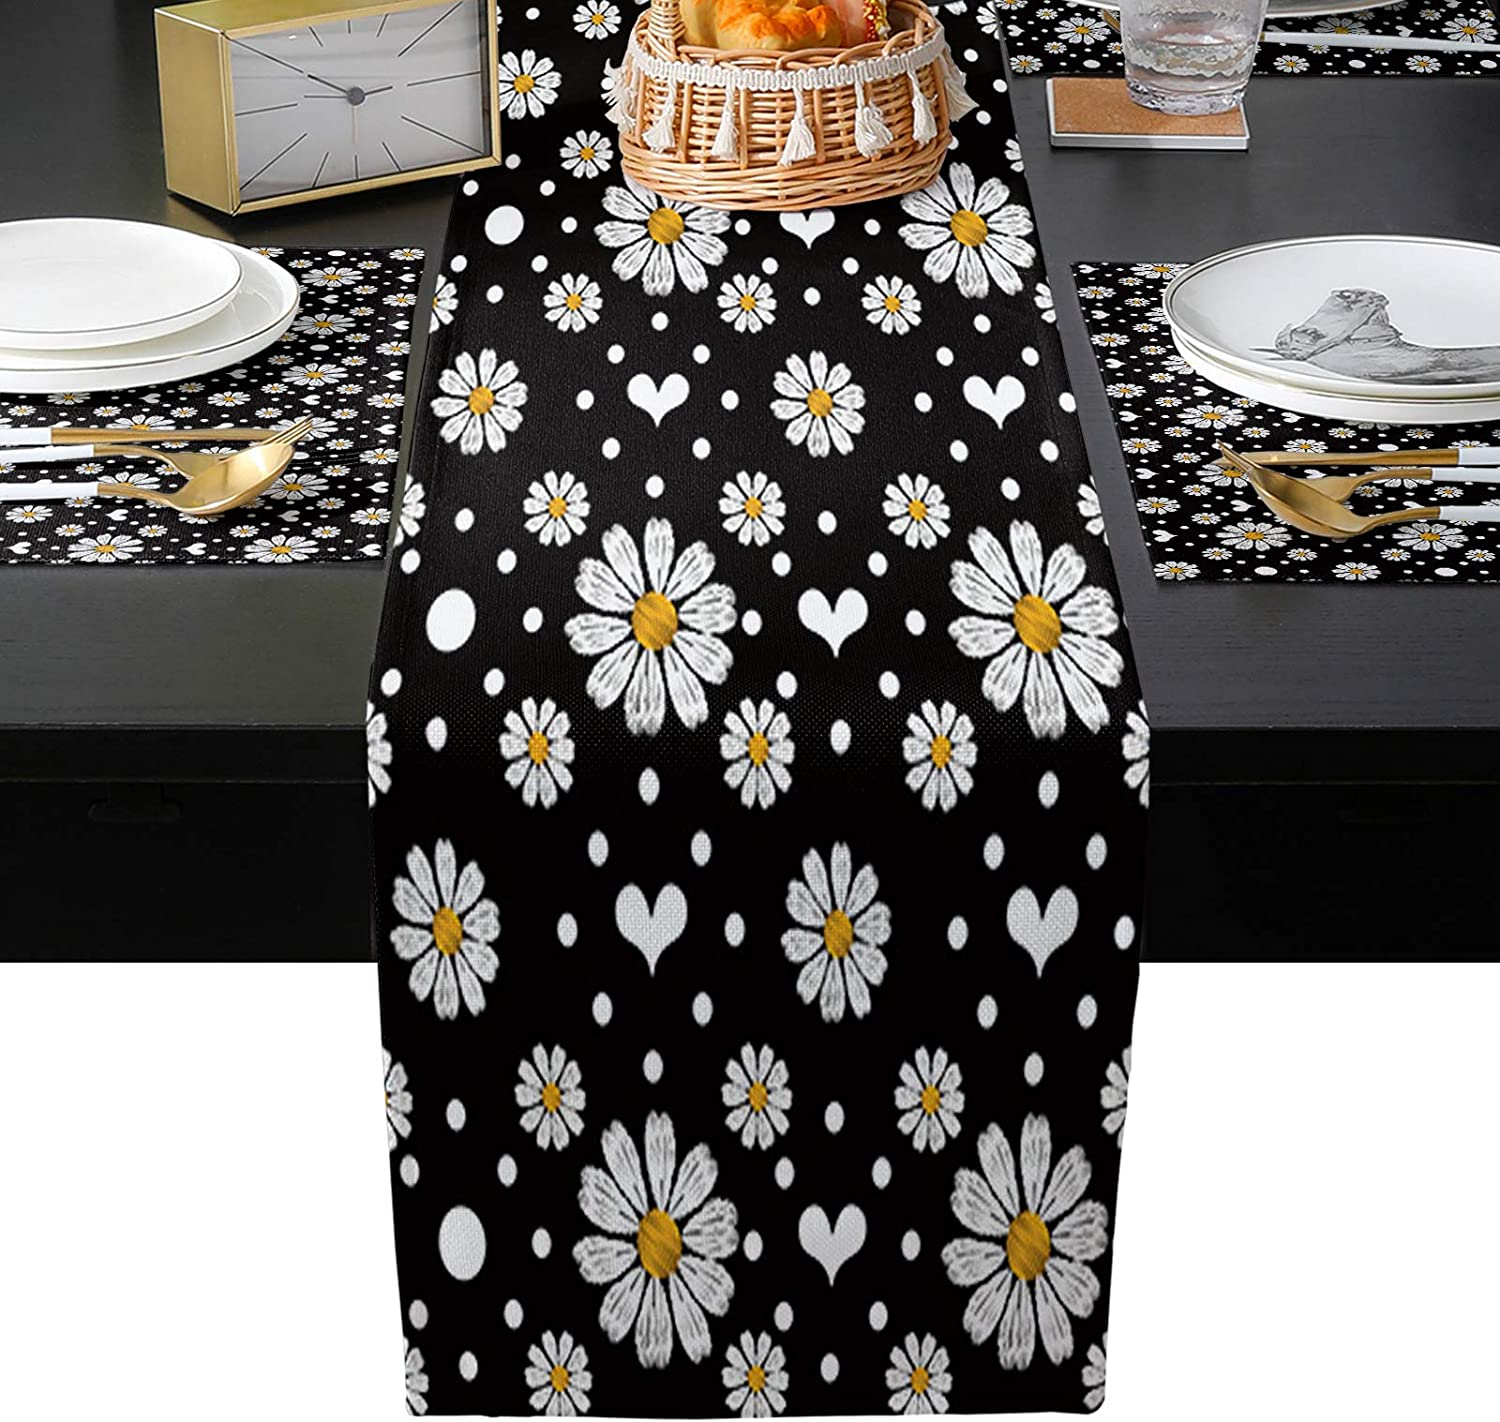 lowest price TH XHome Linen Max 55% OFF Burlap Table and Daisy Fl Placemats-White Runner